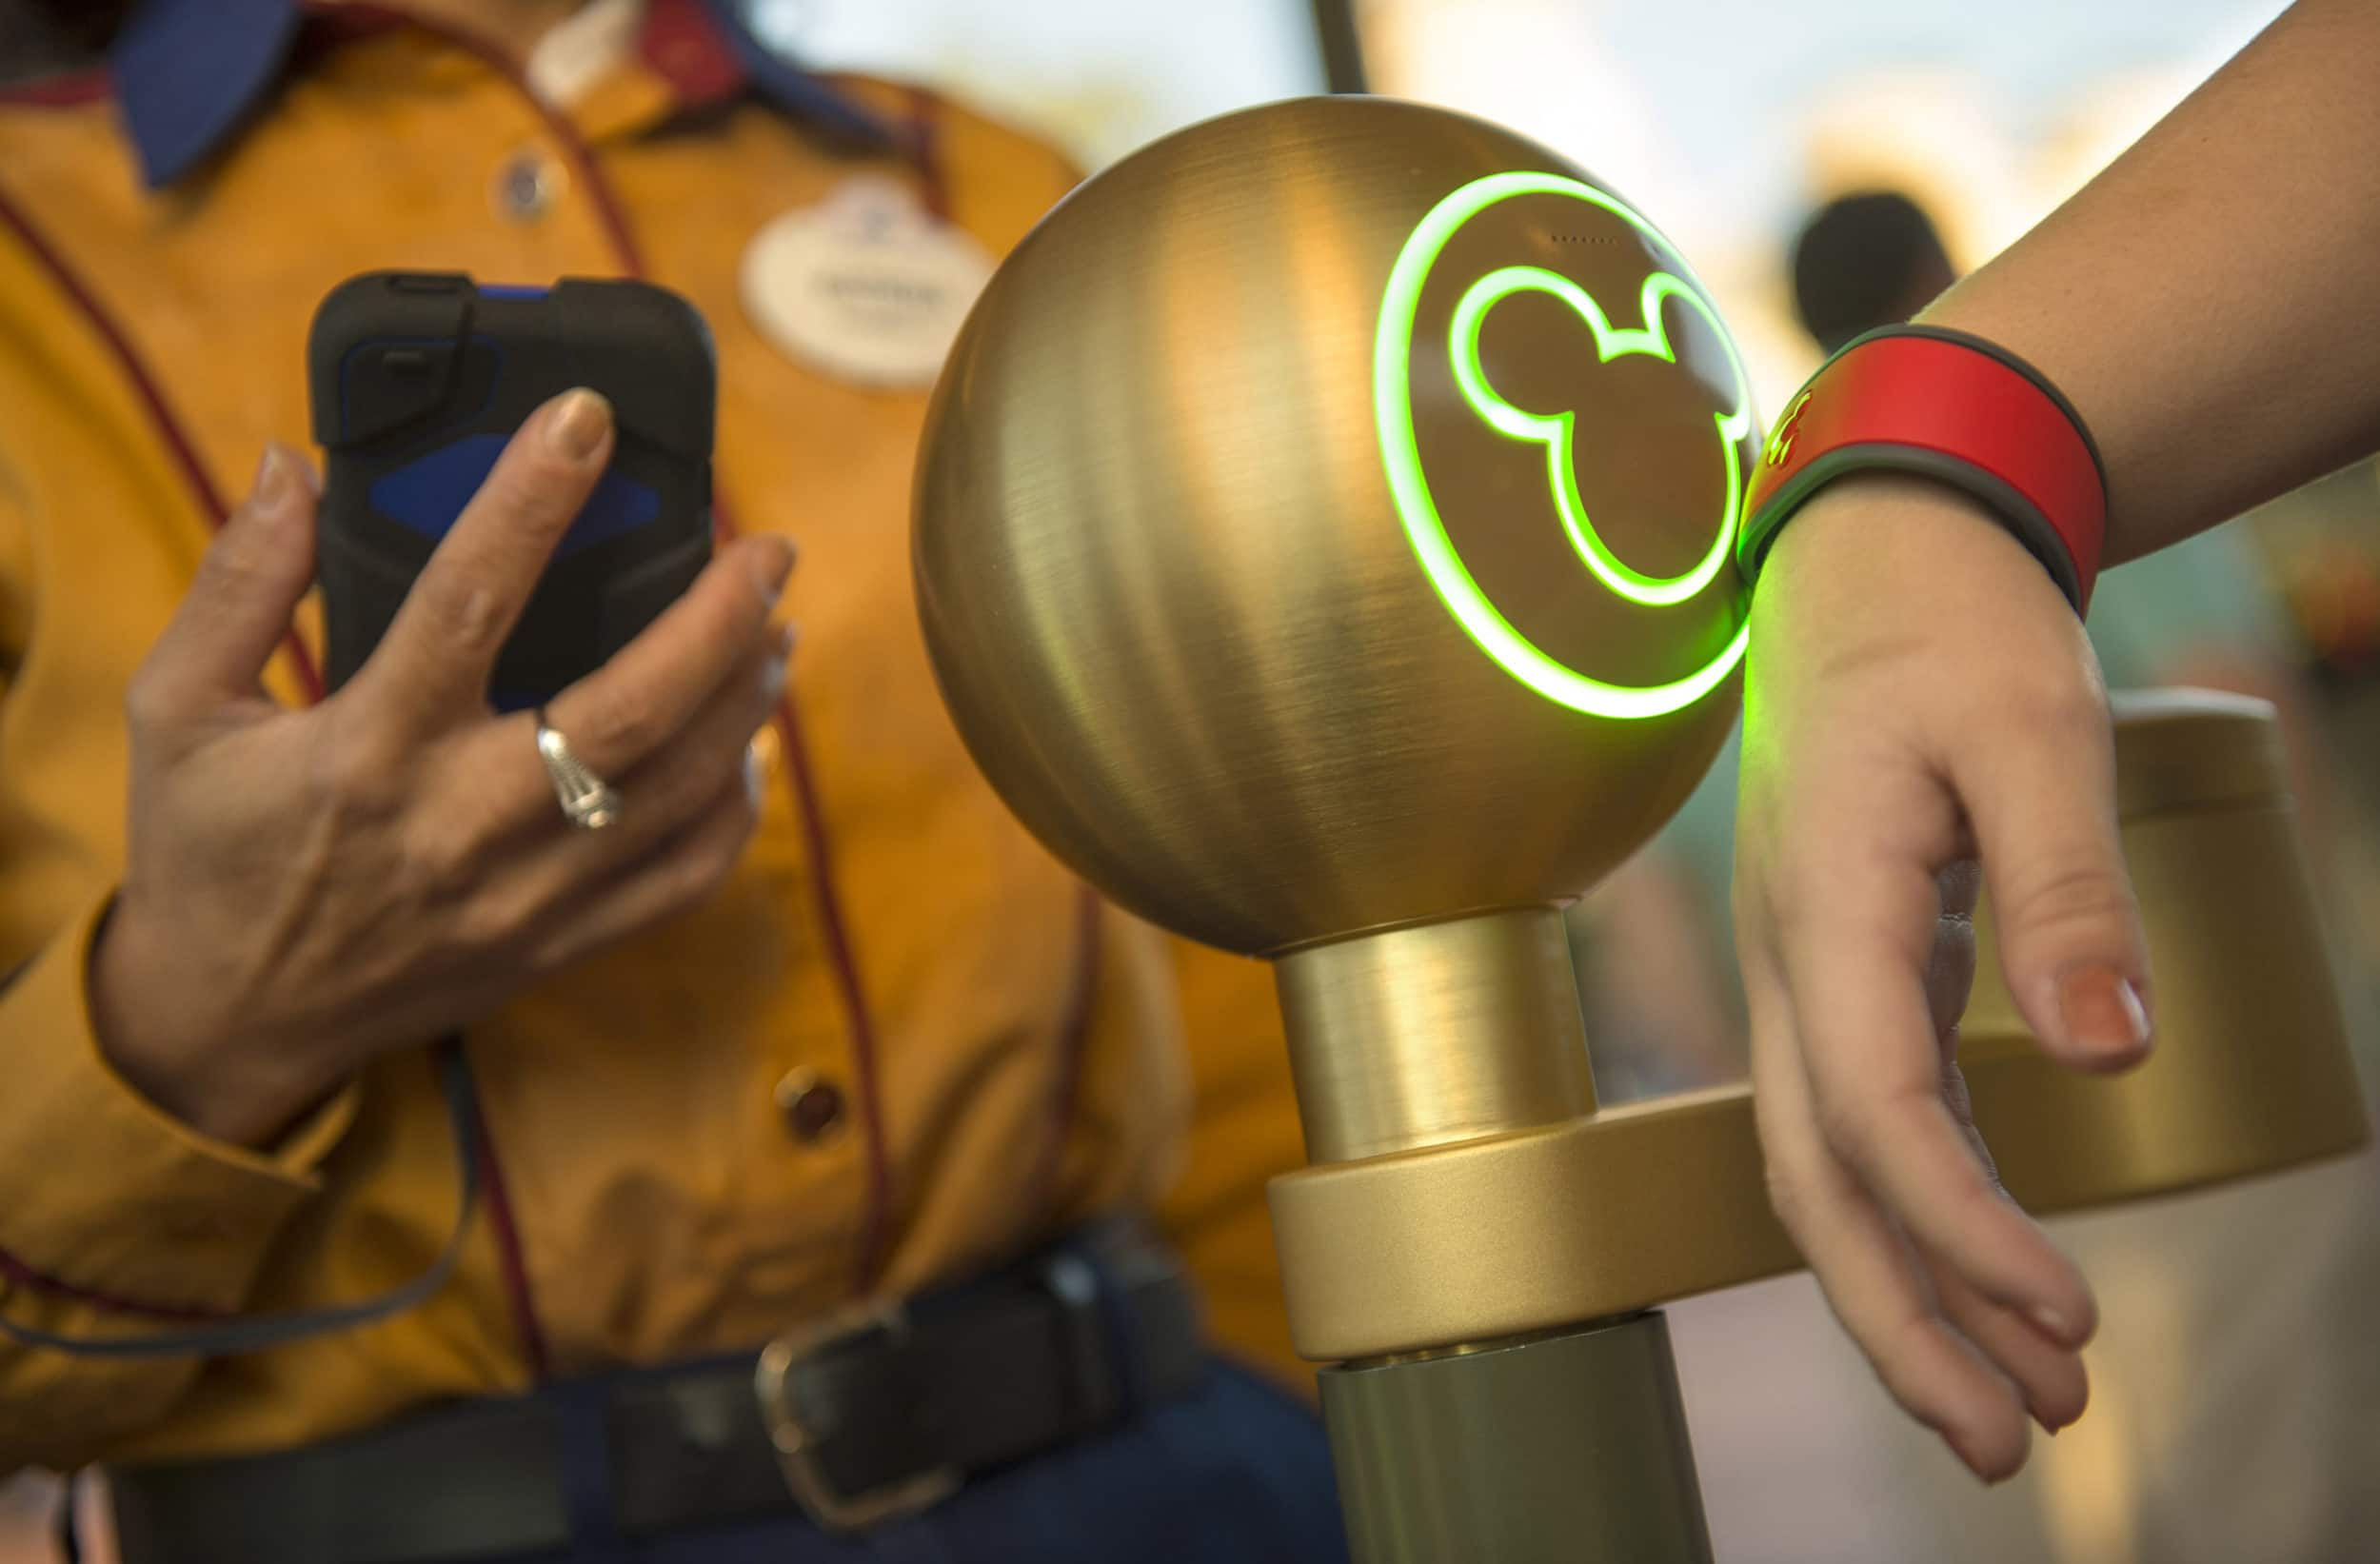 MagicBand in use during a Walt Disney World vacation